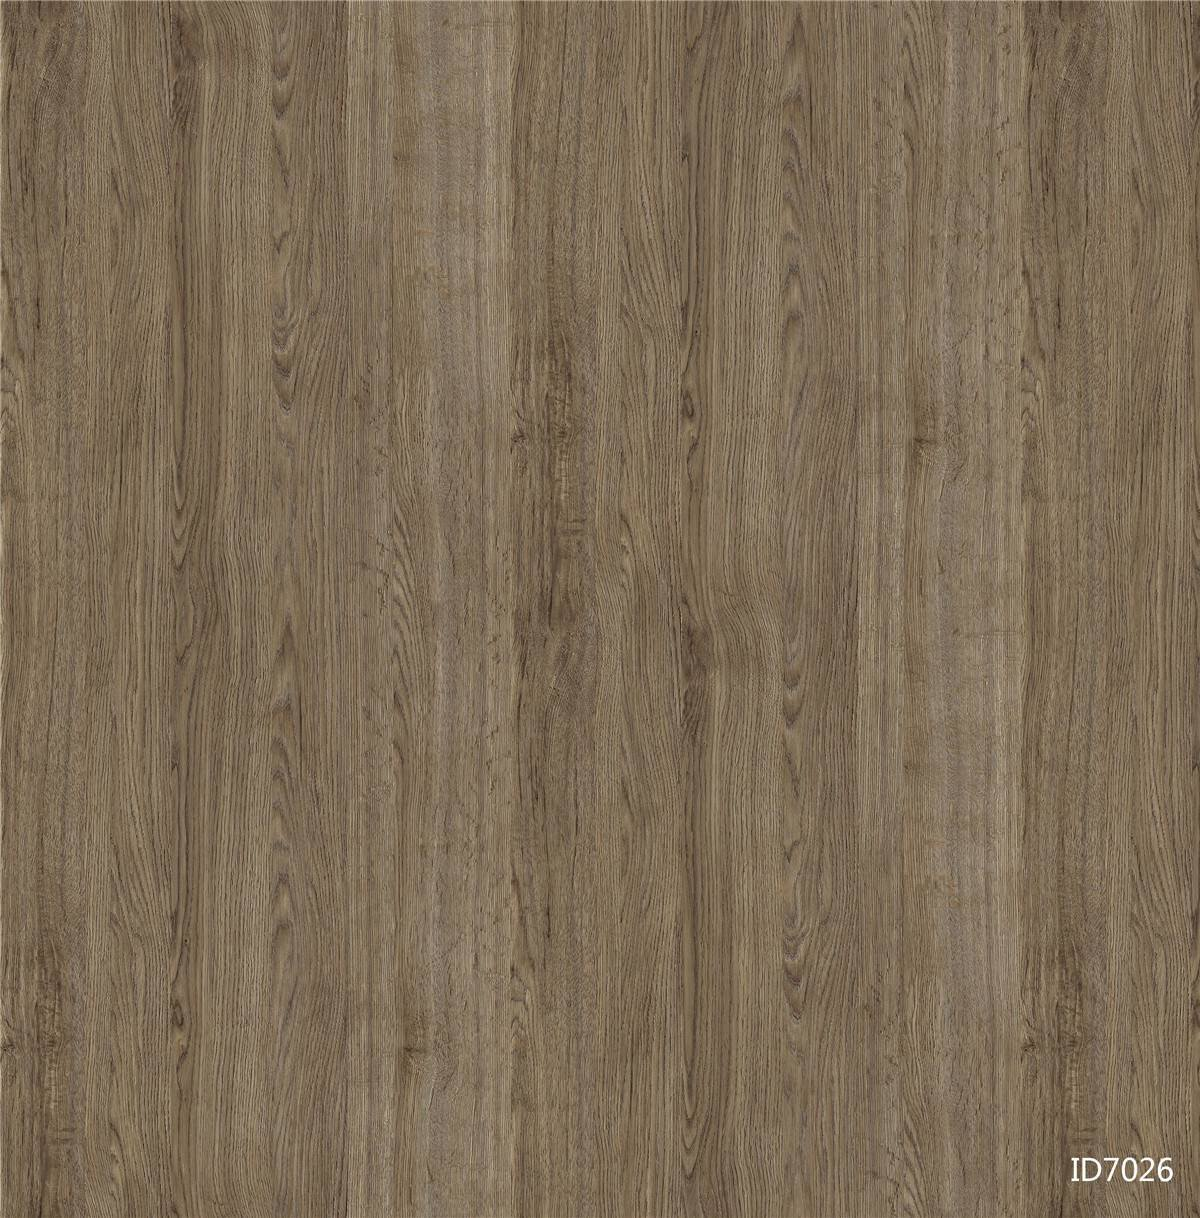 ID7026  Virginia Oak decor paper idecor